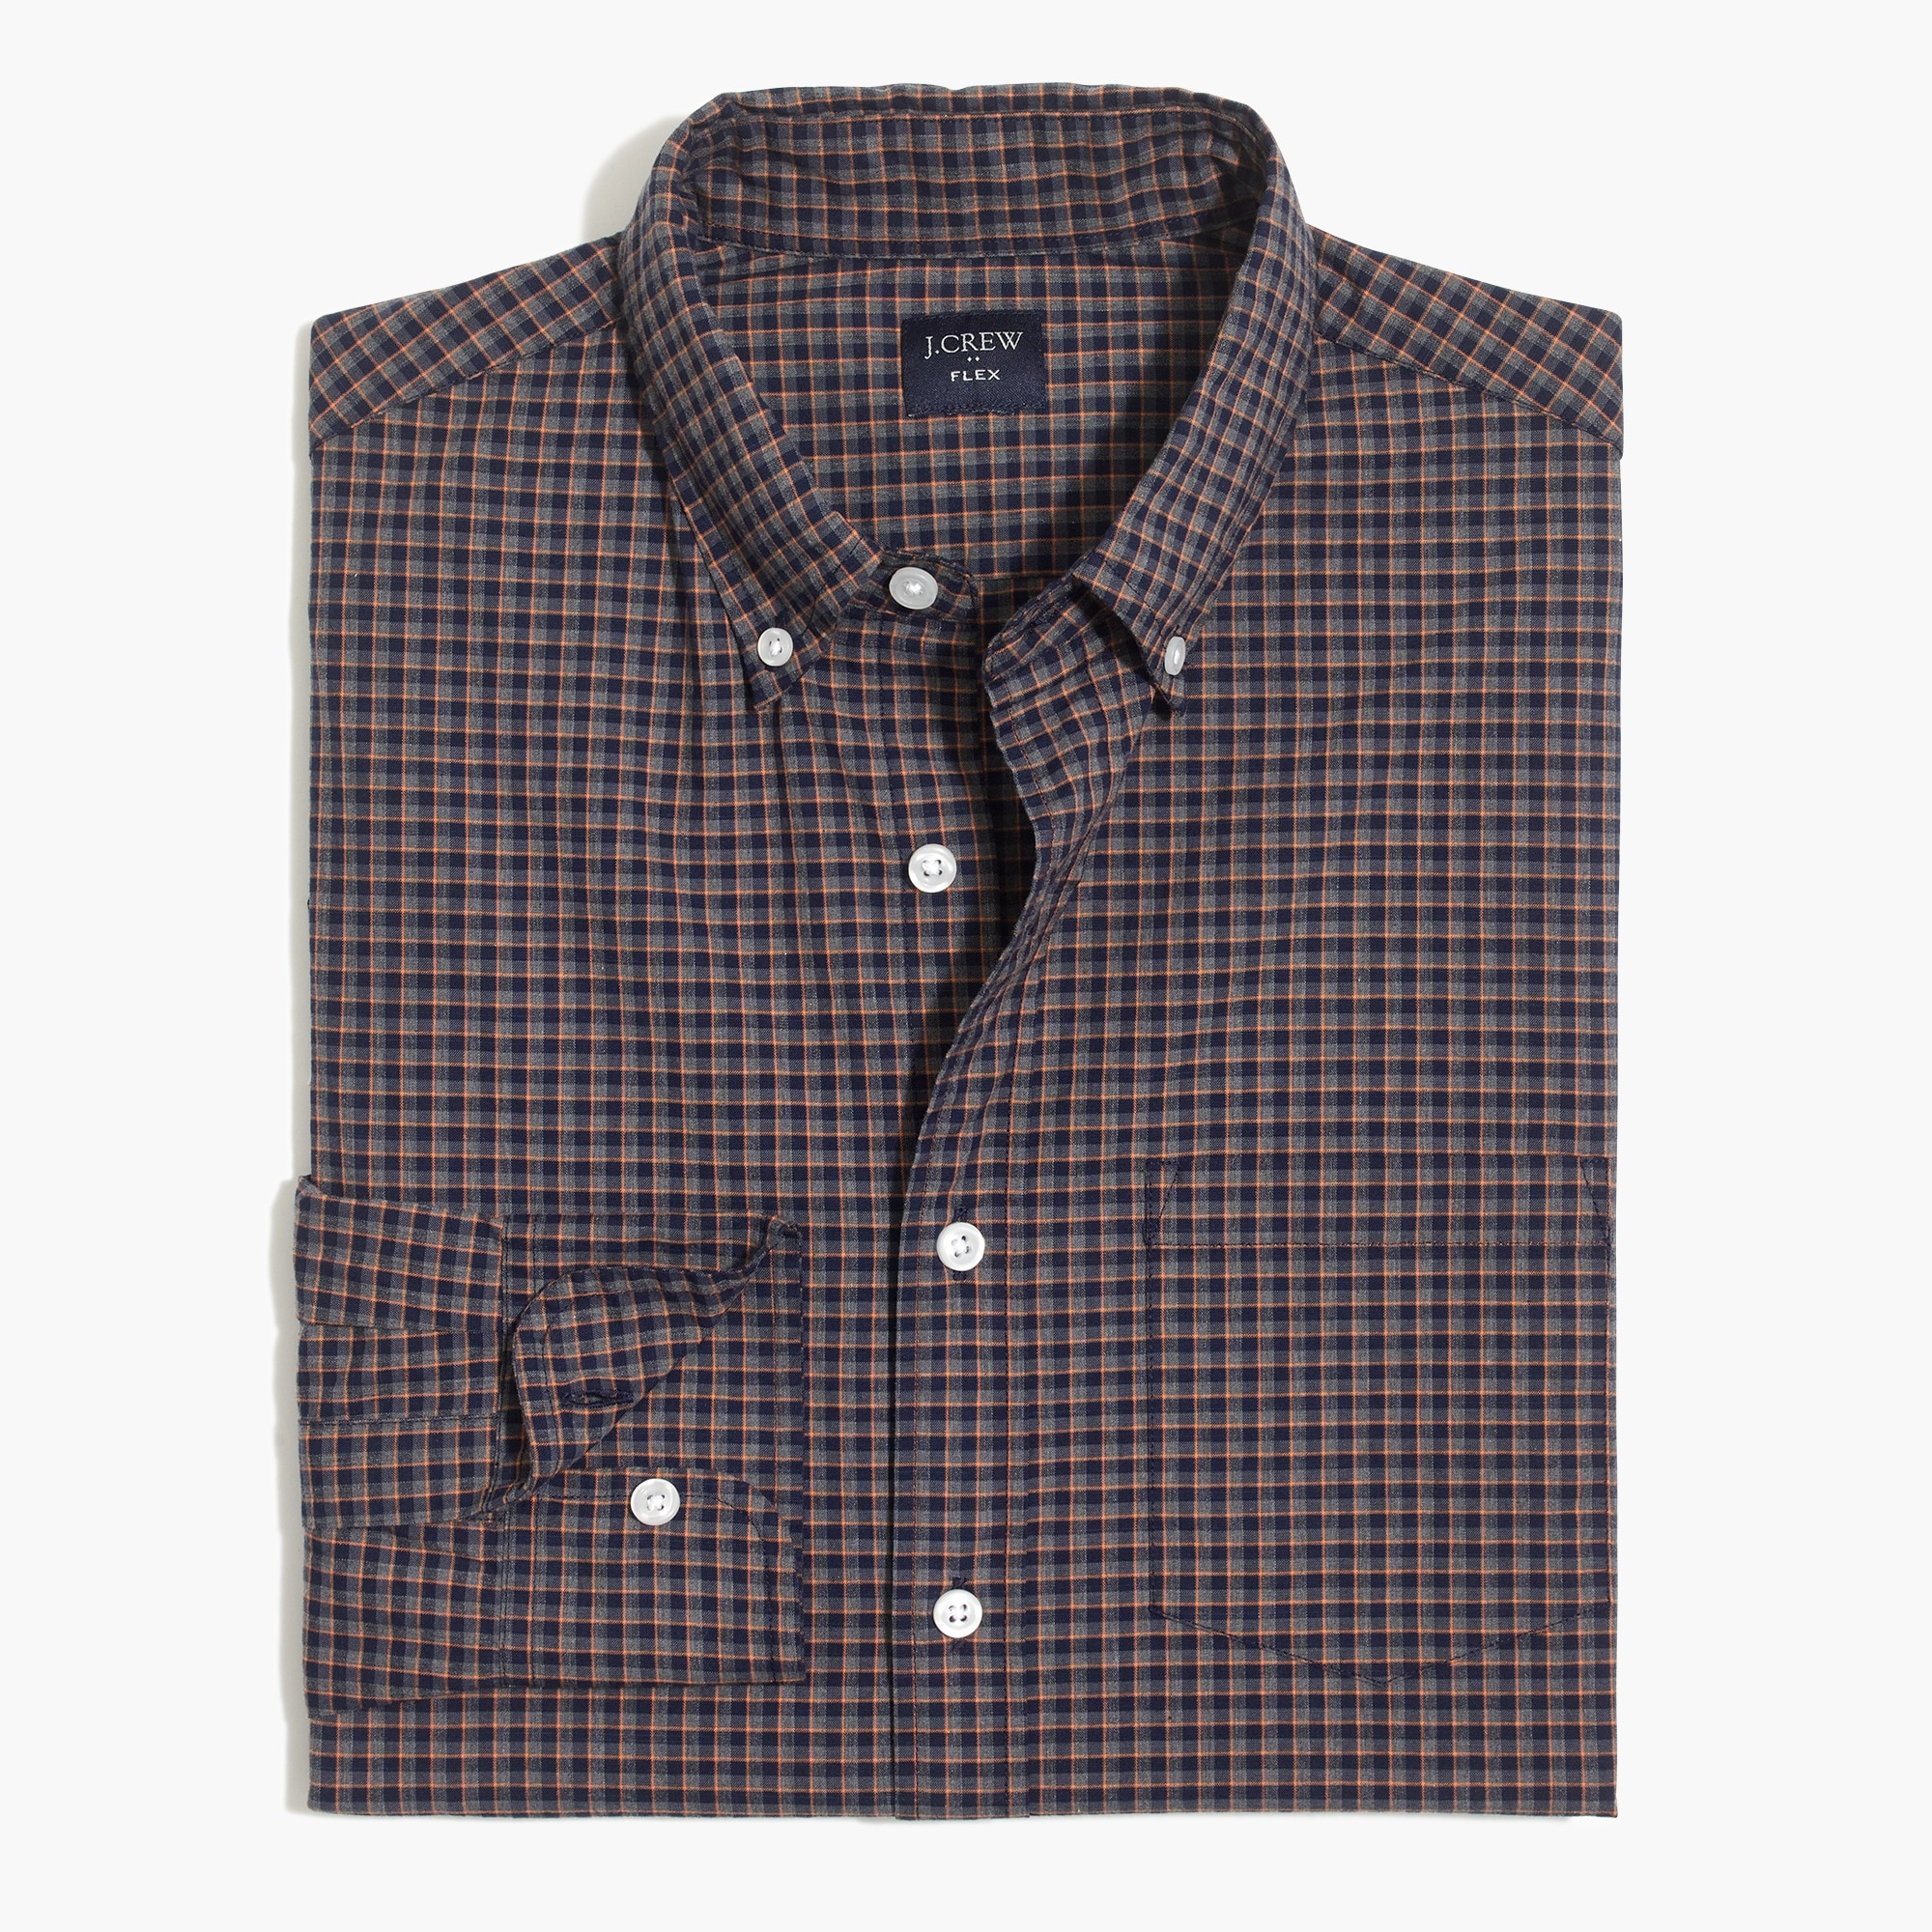 factory mens Flex heather washed shirt in tattersall